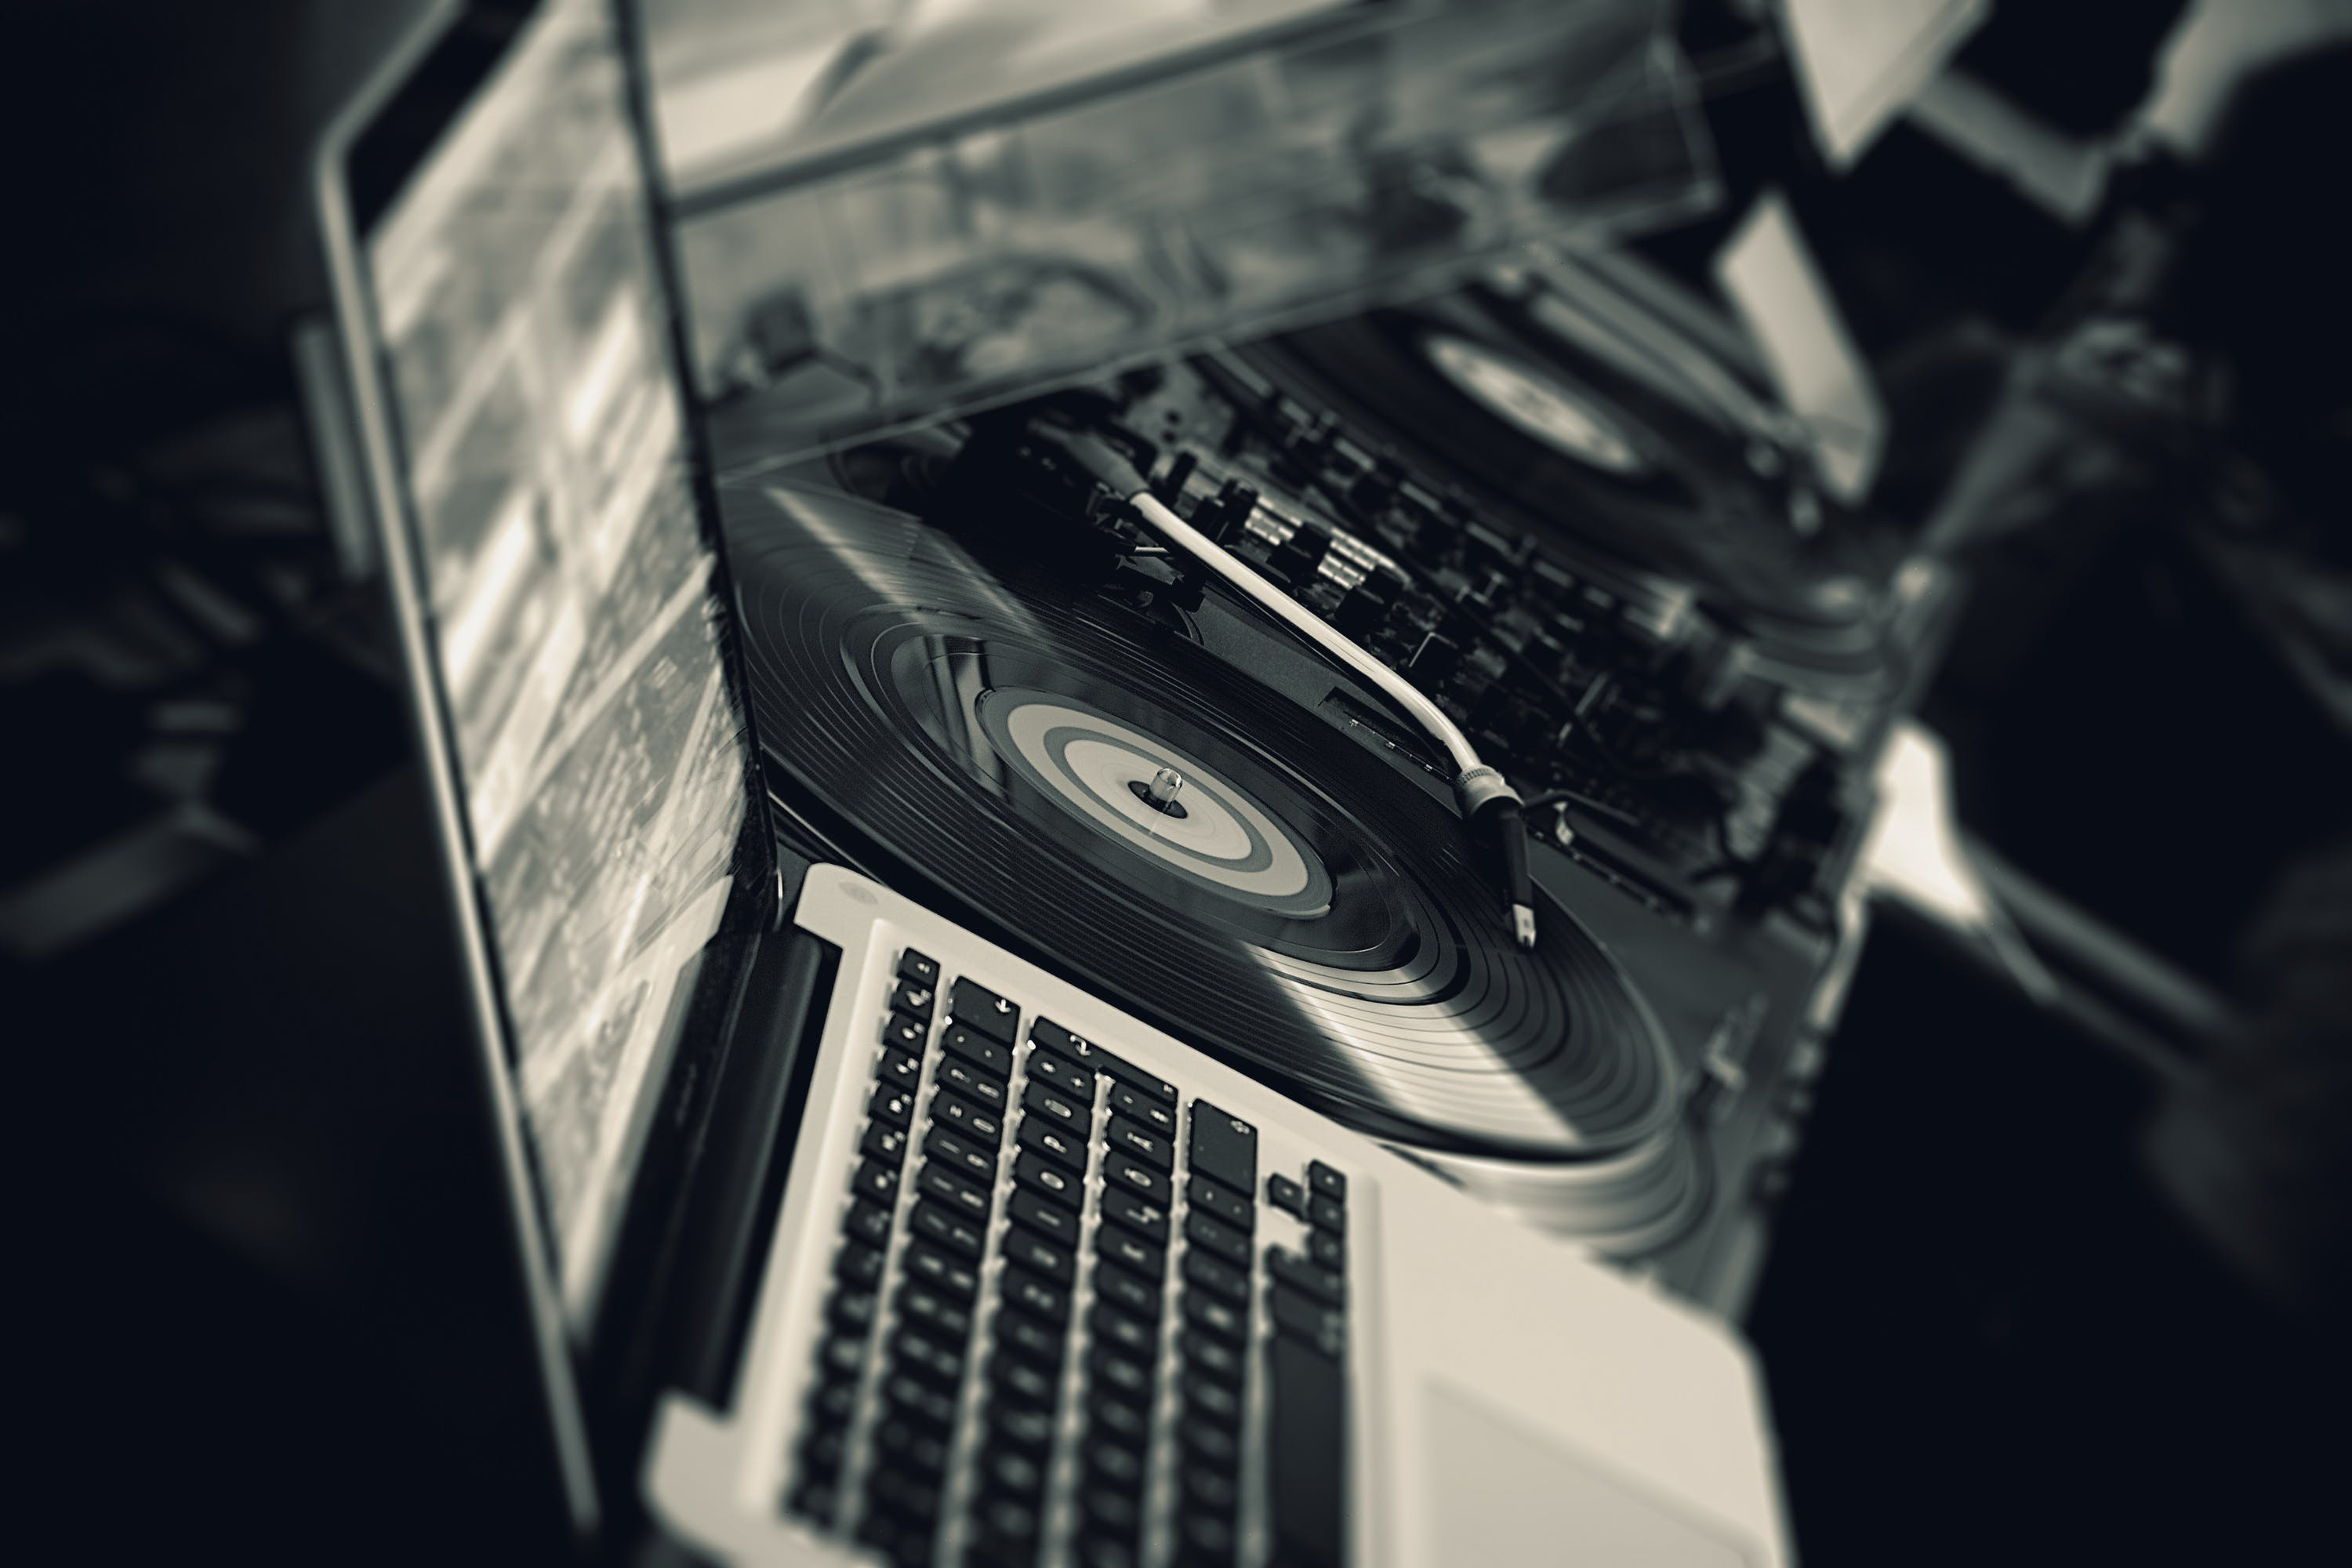 Black Turntable Beside White Laptop Computer